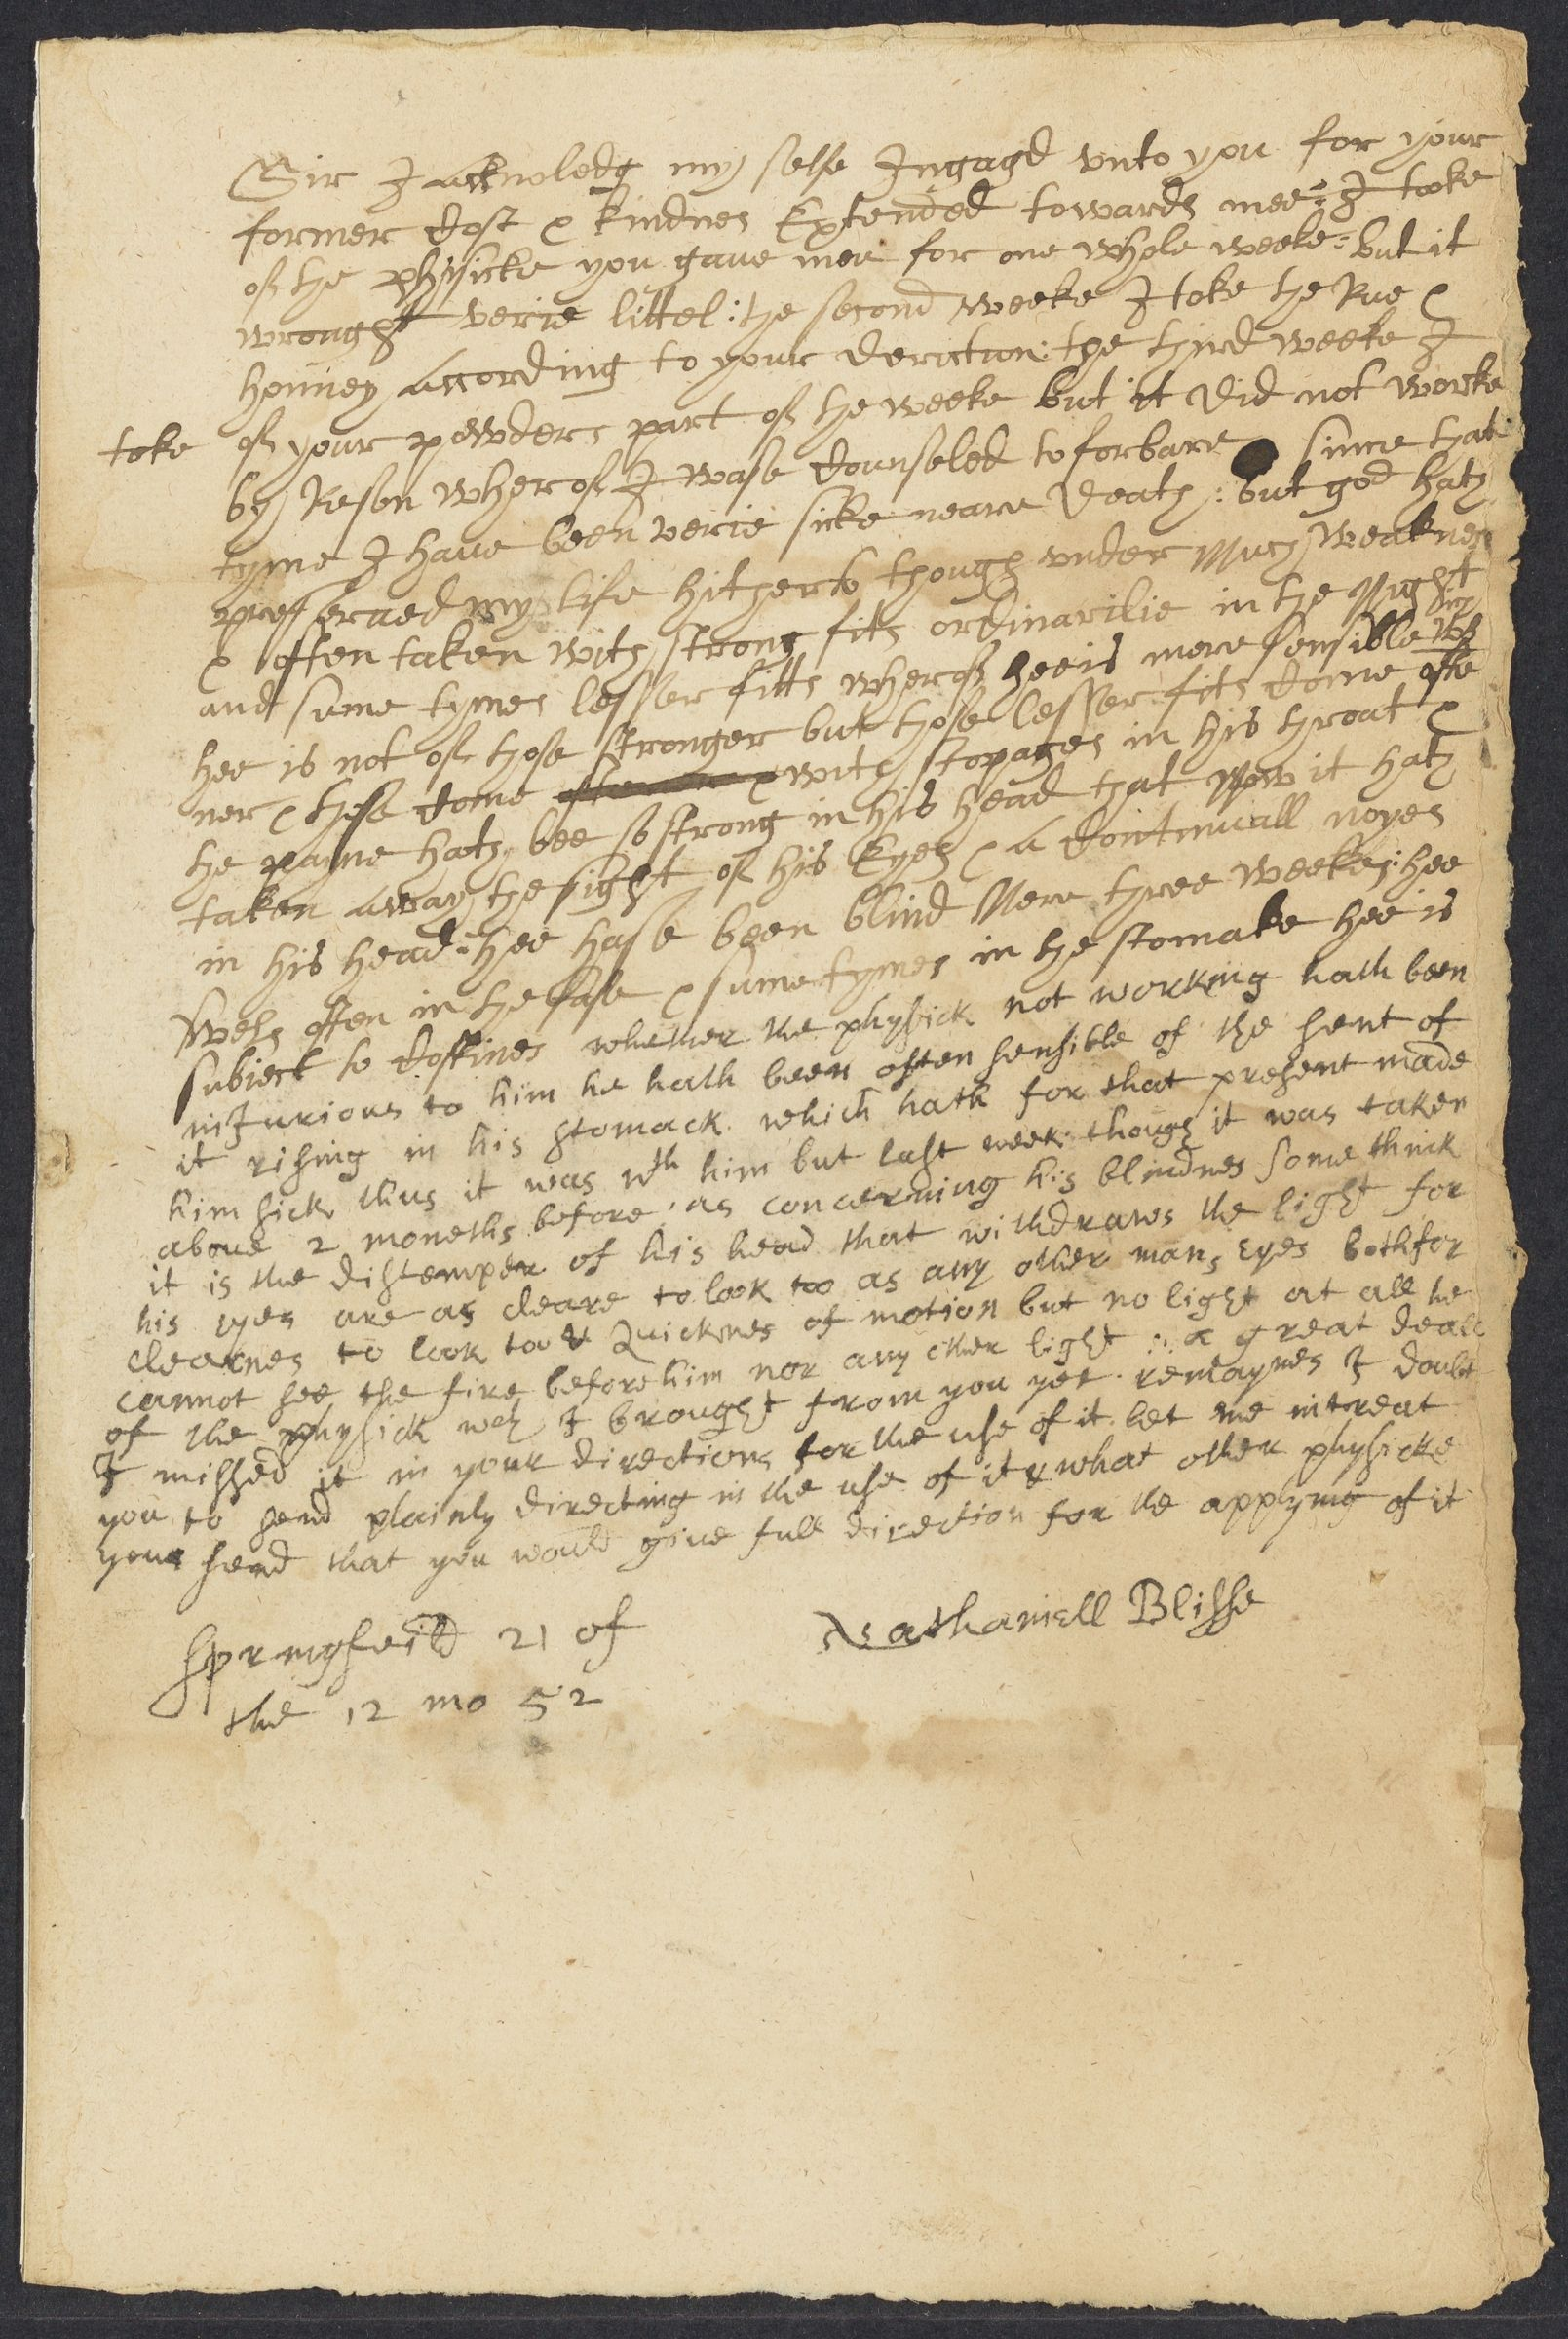 Bliss, Nathaniel, 1622-1654, autographed letter signed to John Winthrop; Springfield, Mass., 1 side (2 pages), 1652 December 21